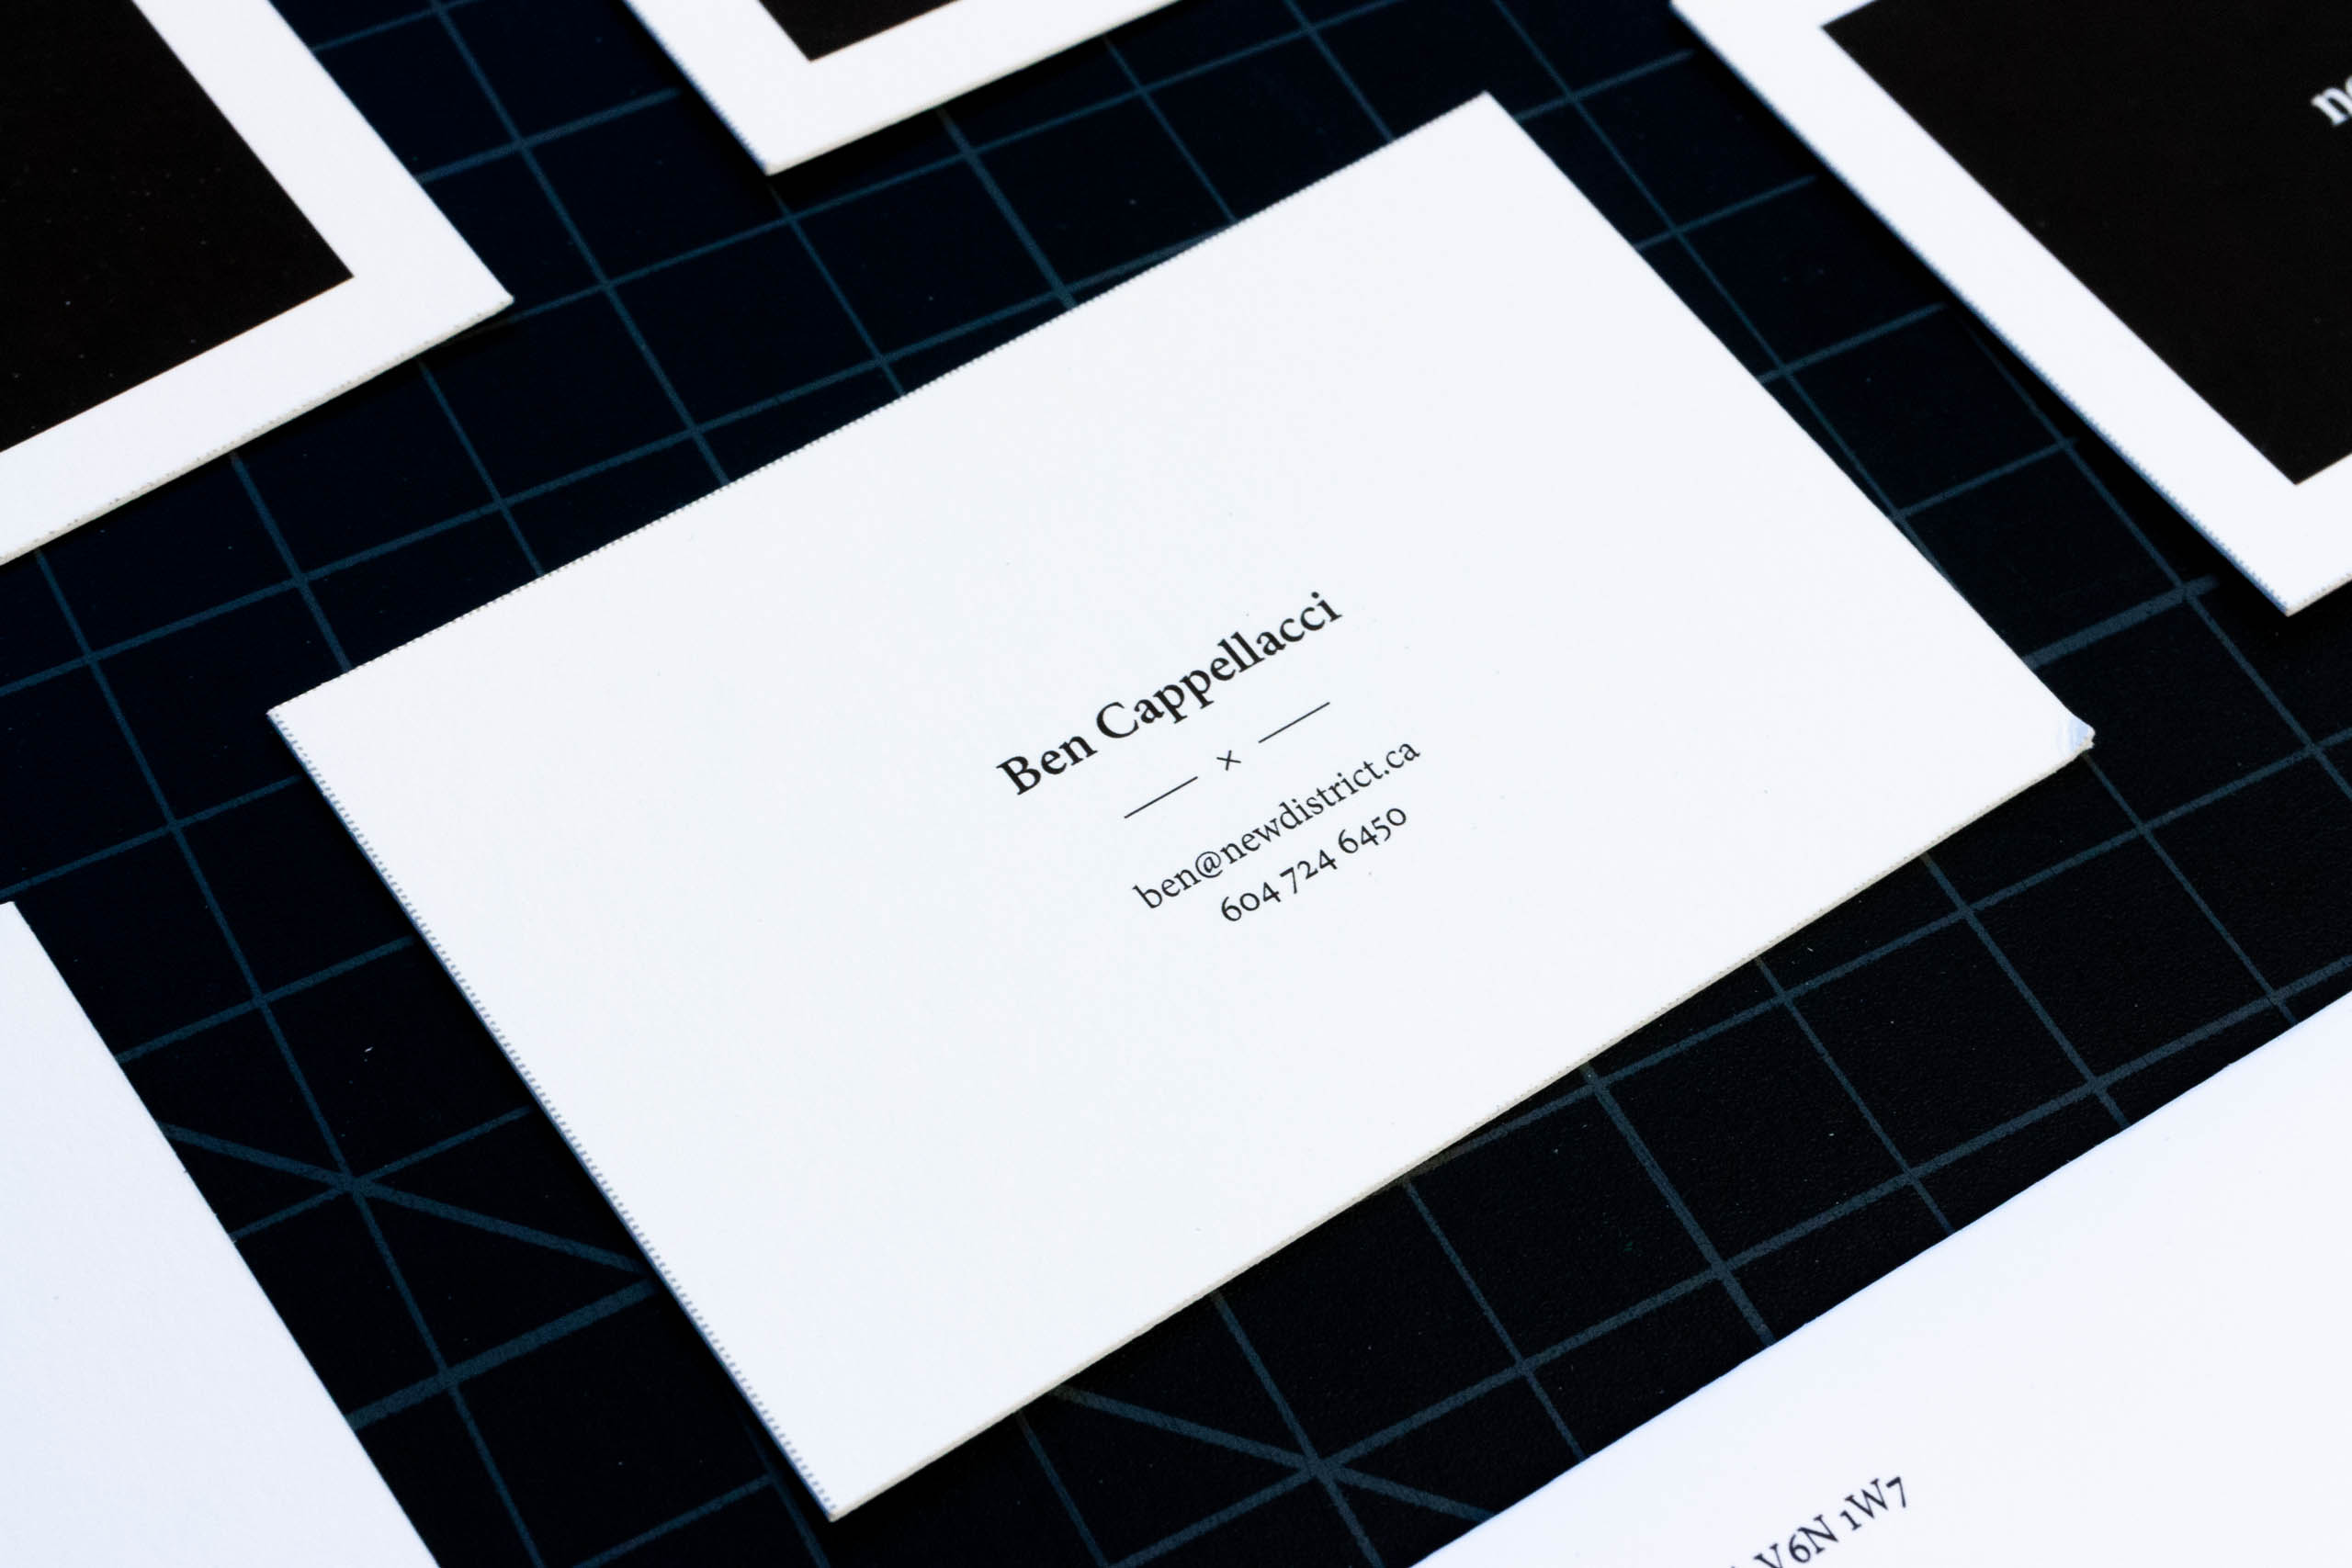 Business card showing details of New District founder — by Yagnyuk.